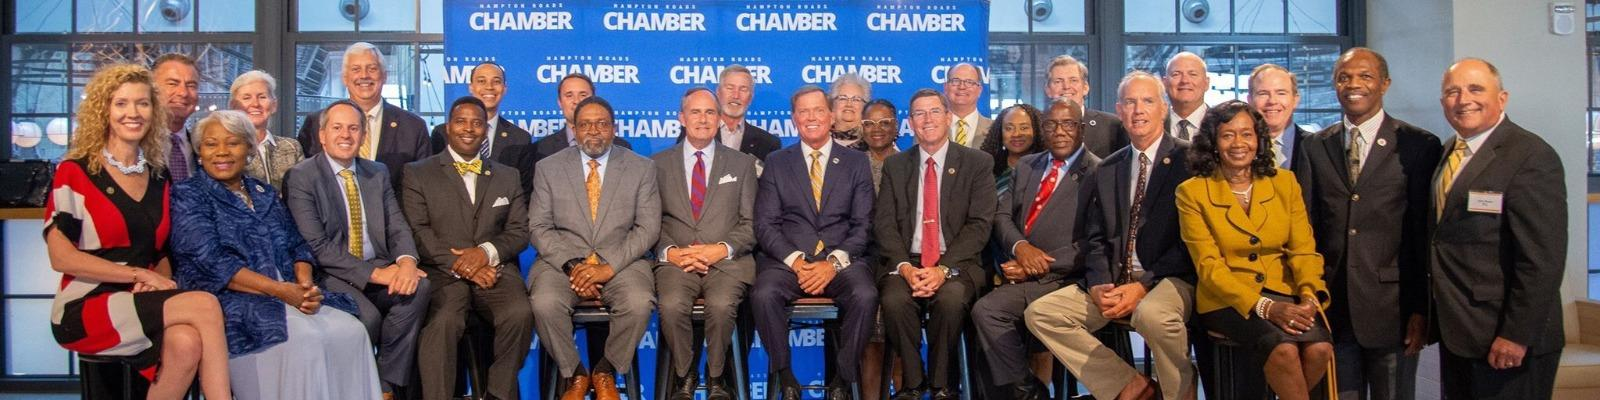 Legislators Convened for the Hampton Roads Chamber's 2019 Legislative Reception Cover